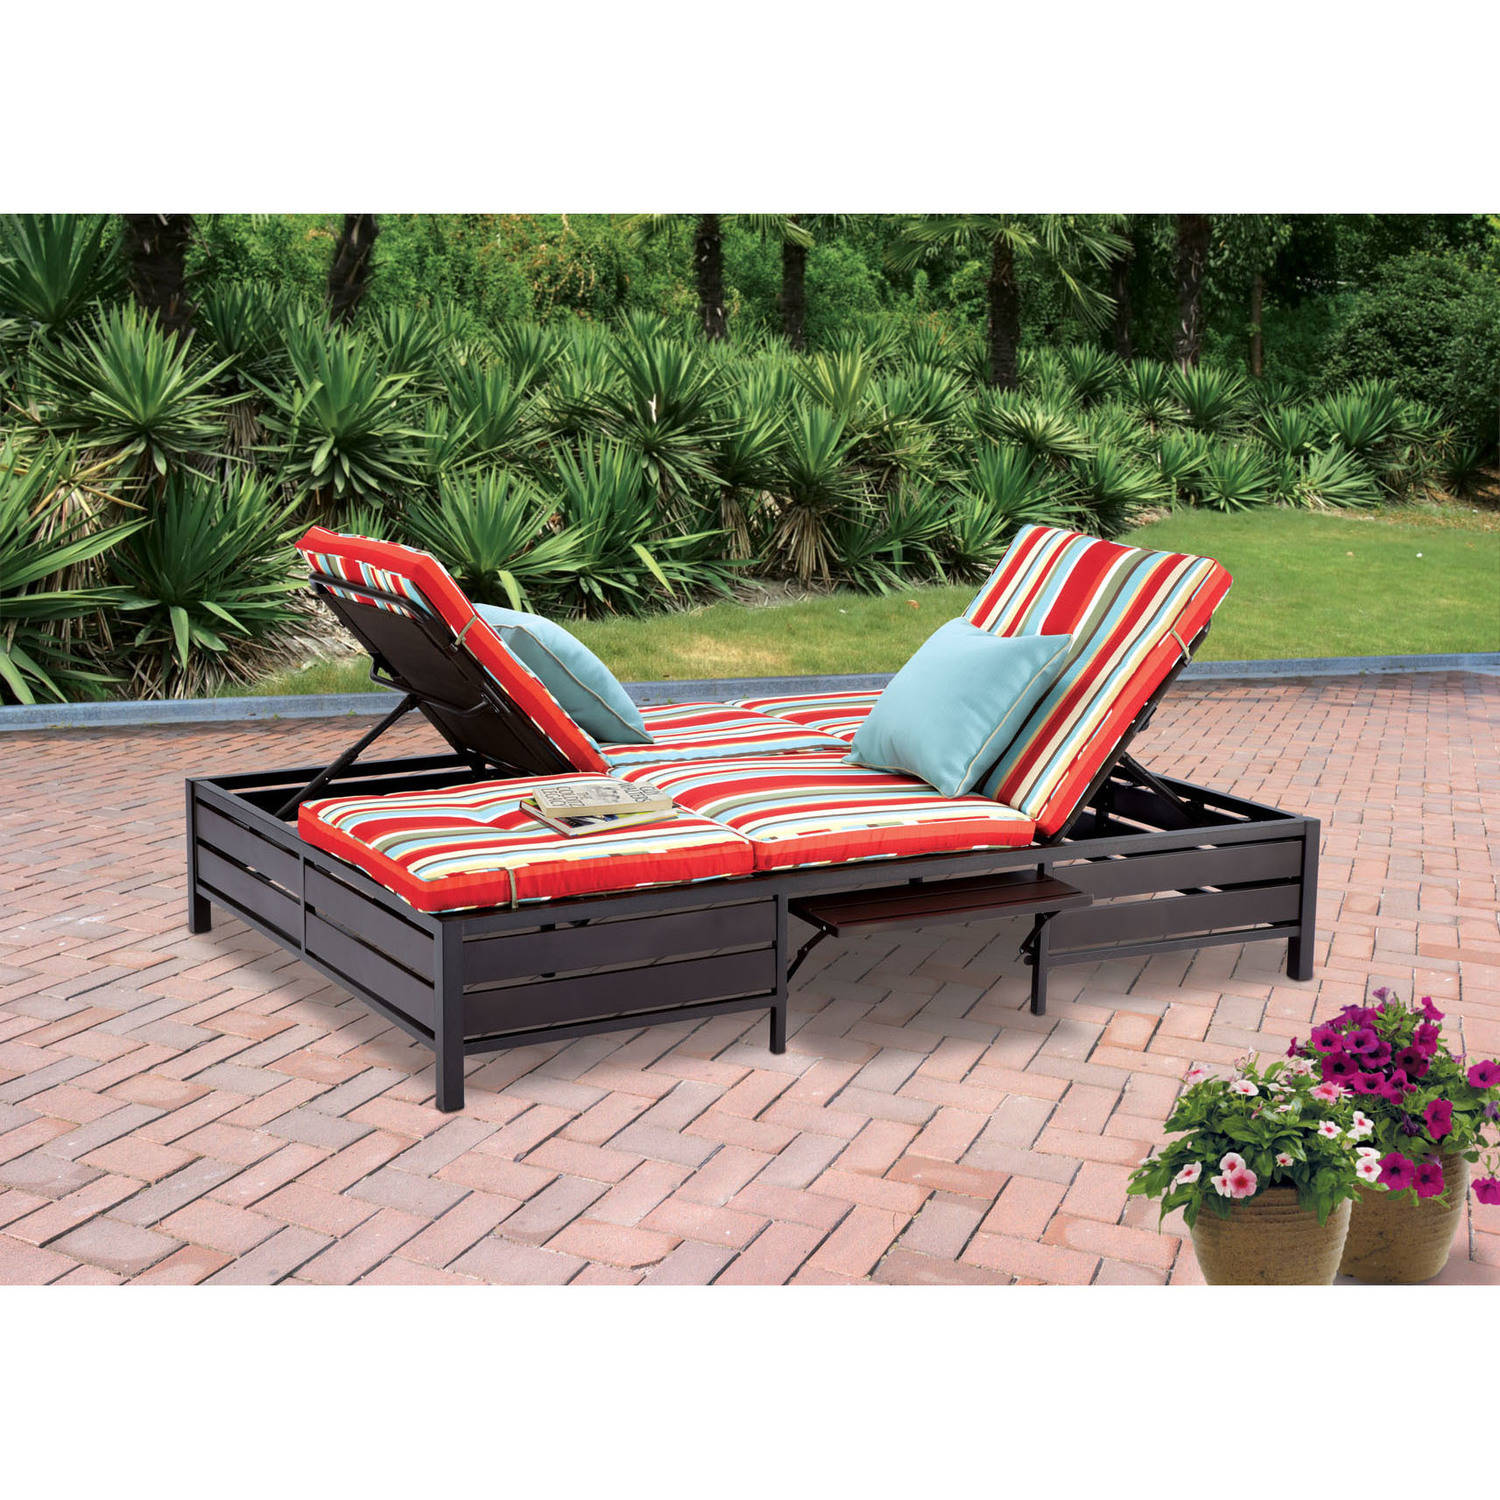 mainstays outdoor double chaise lounge bench multi color stripes seats 2 walmart com